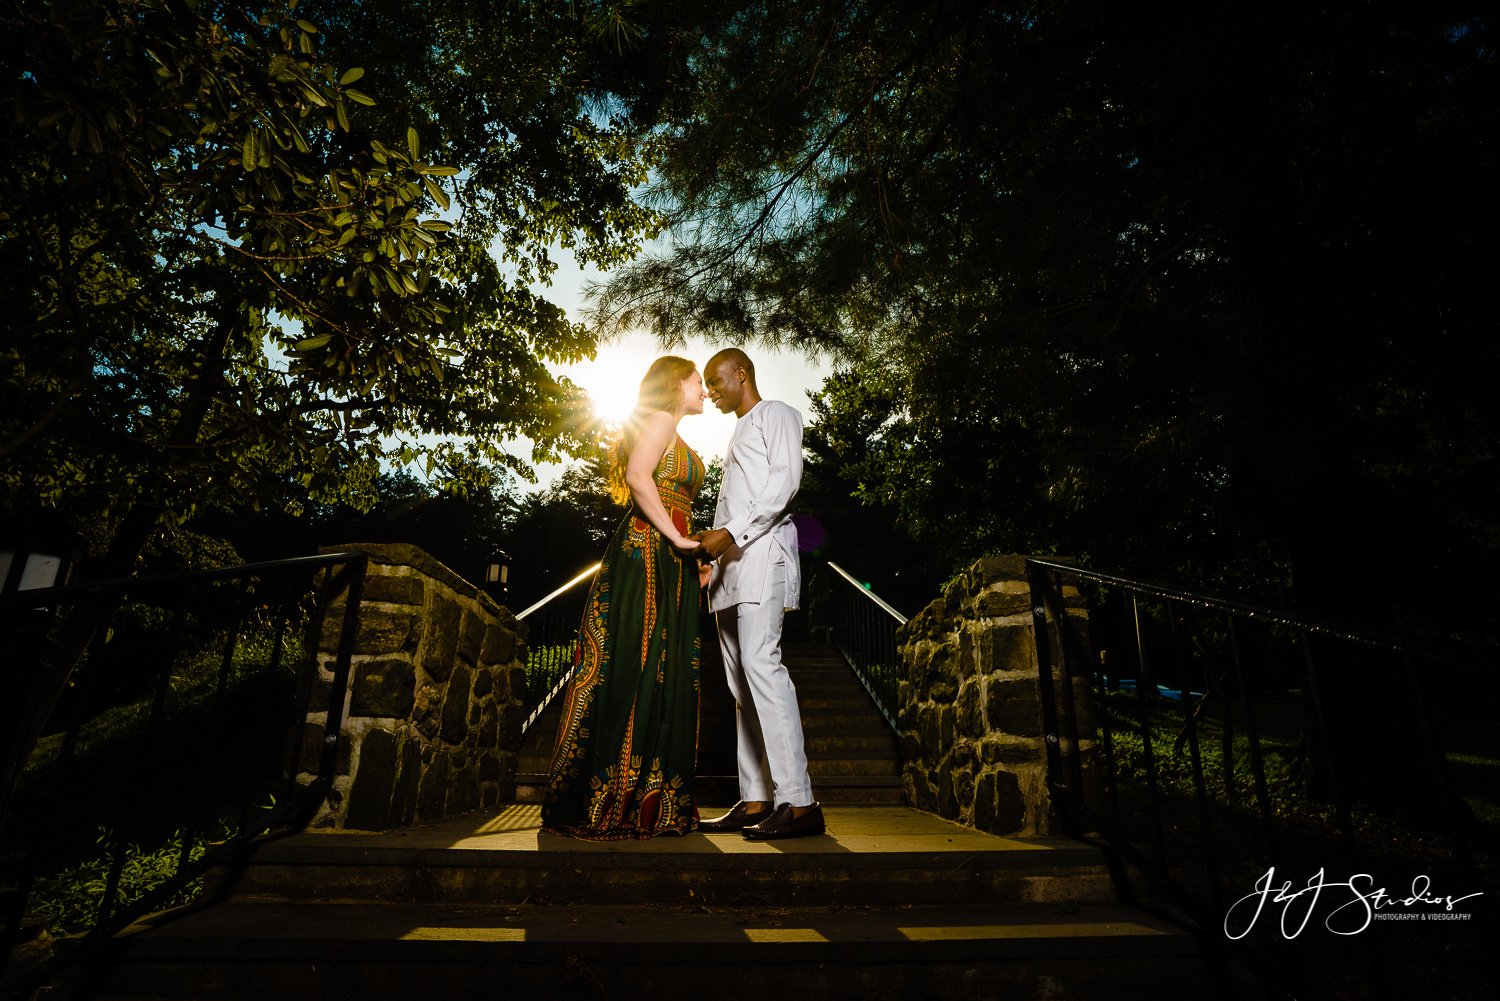 sunlight beaming in through trees woman man engaged stairs